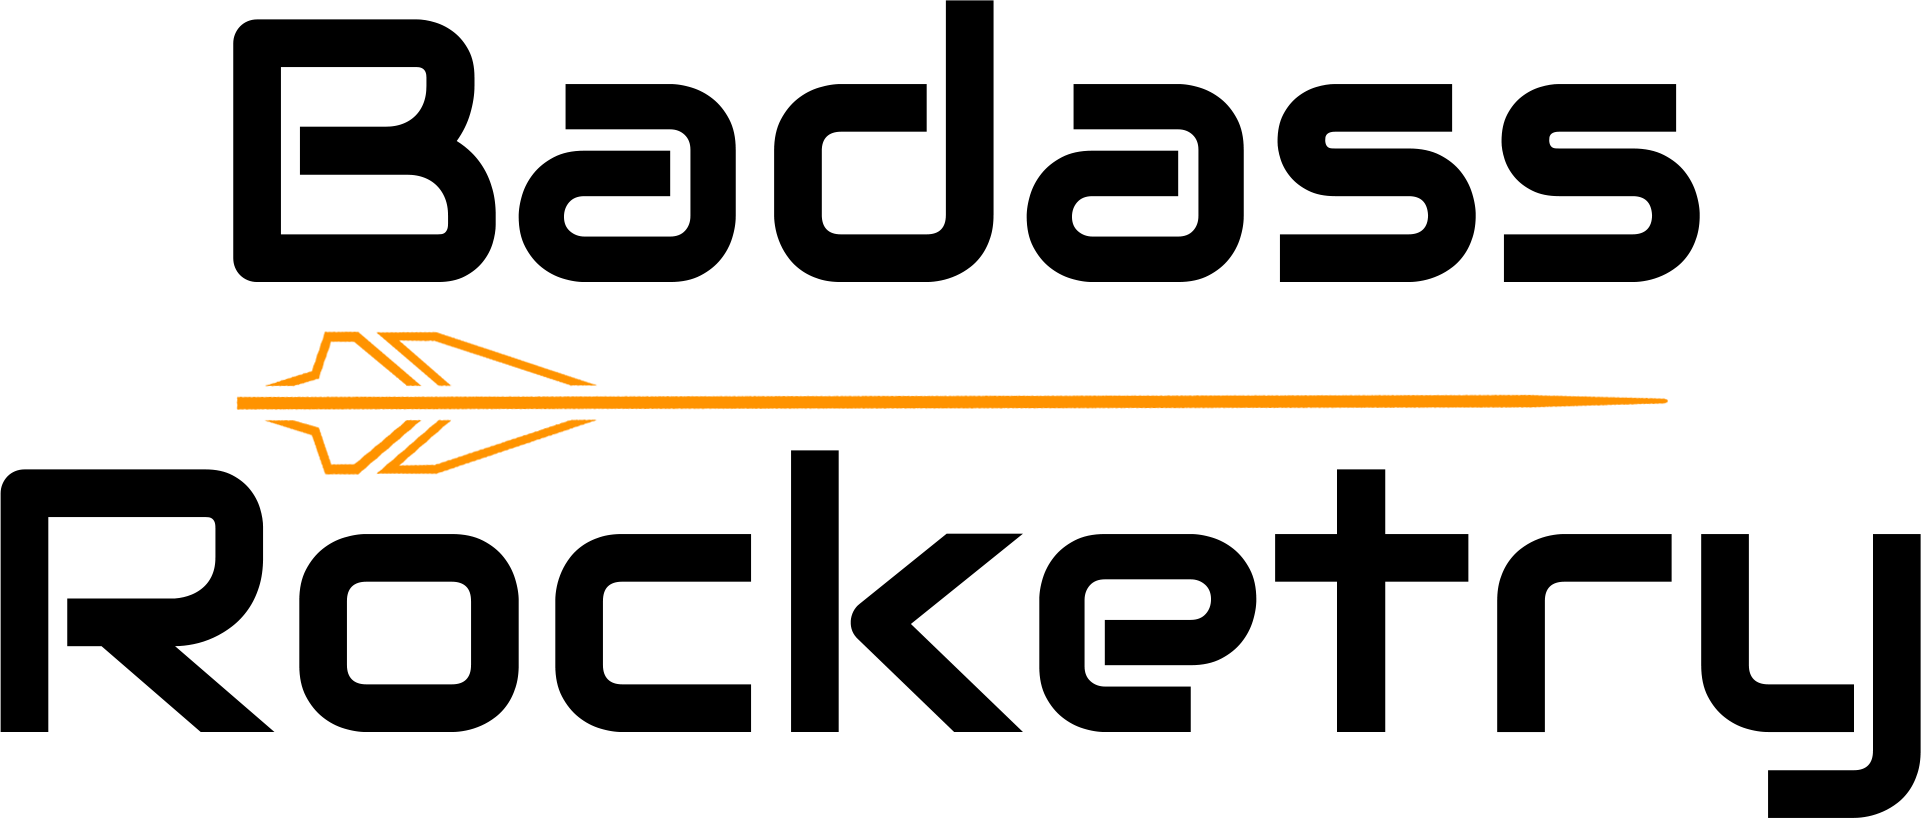 www.badassrocketry.com